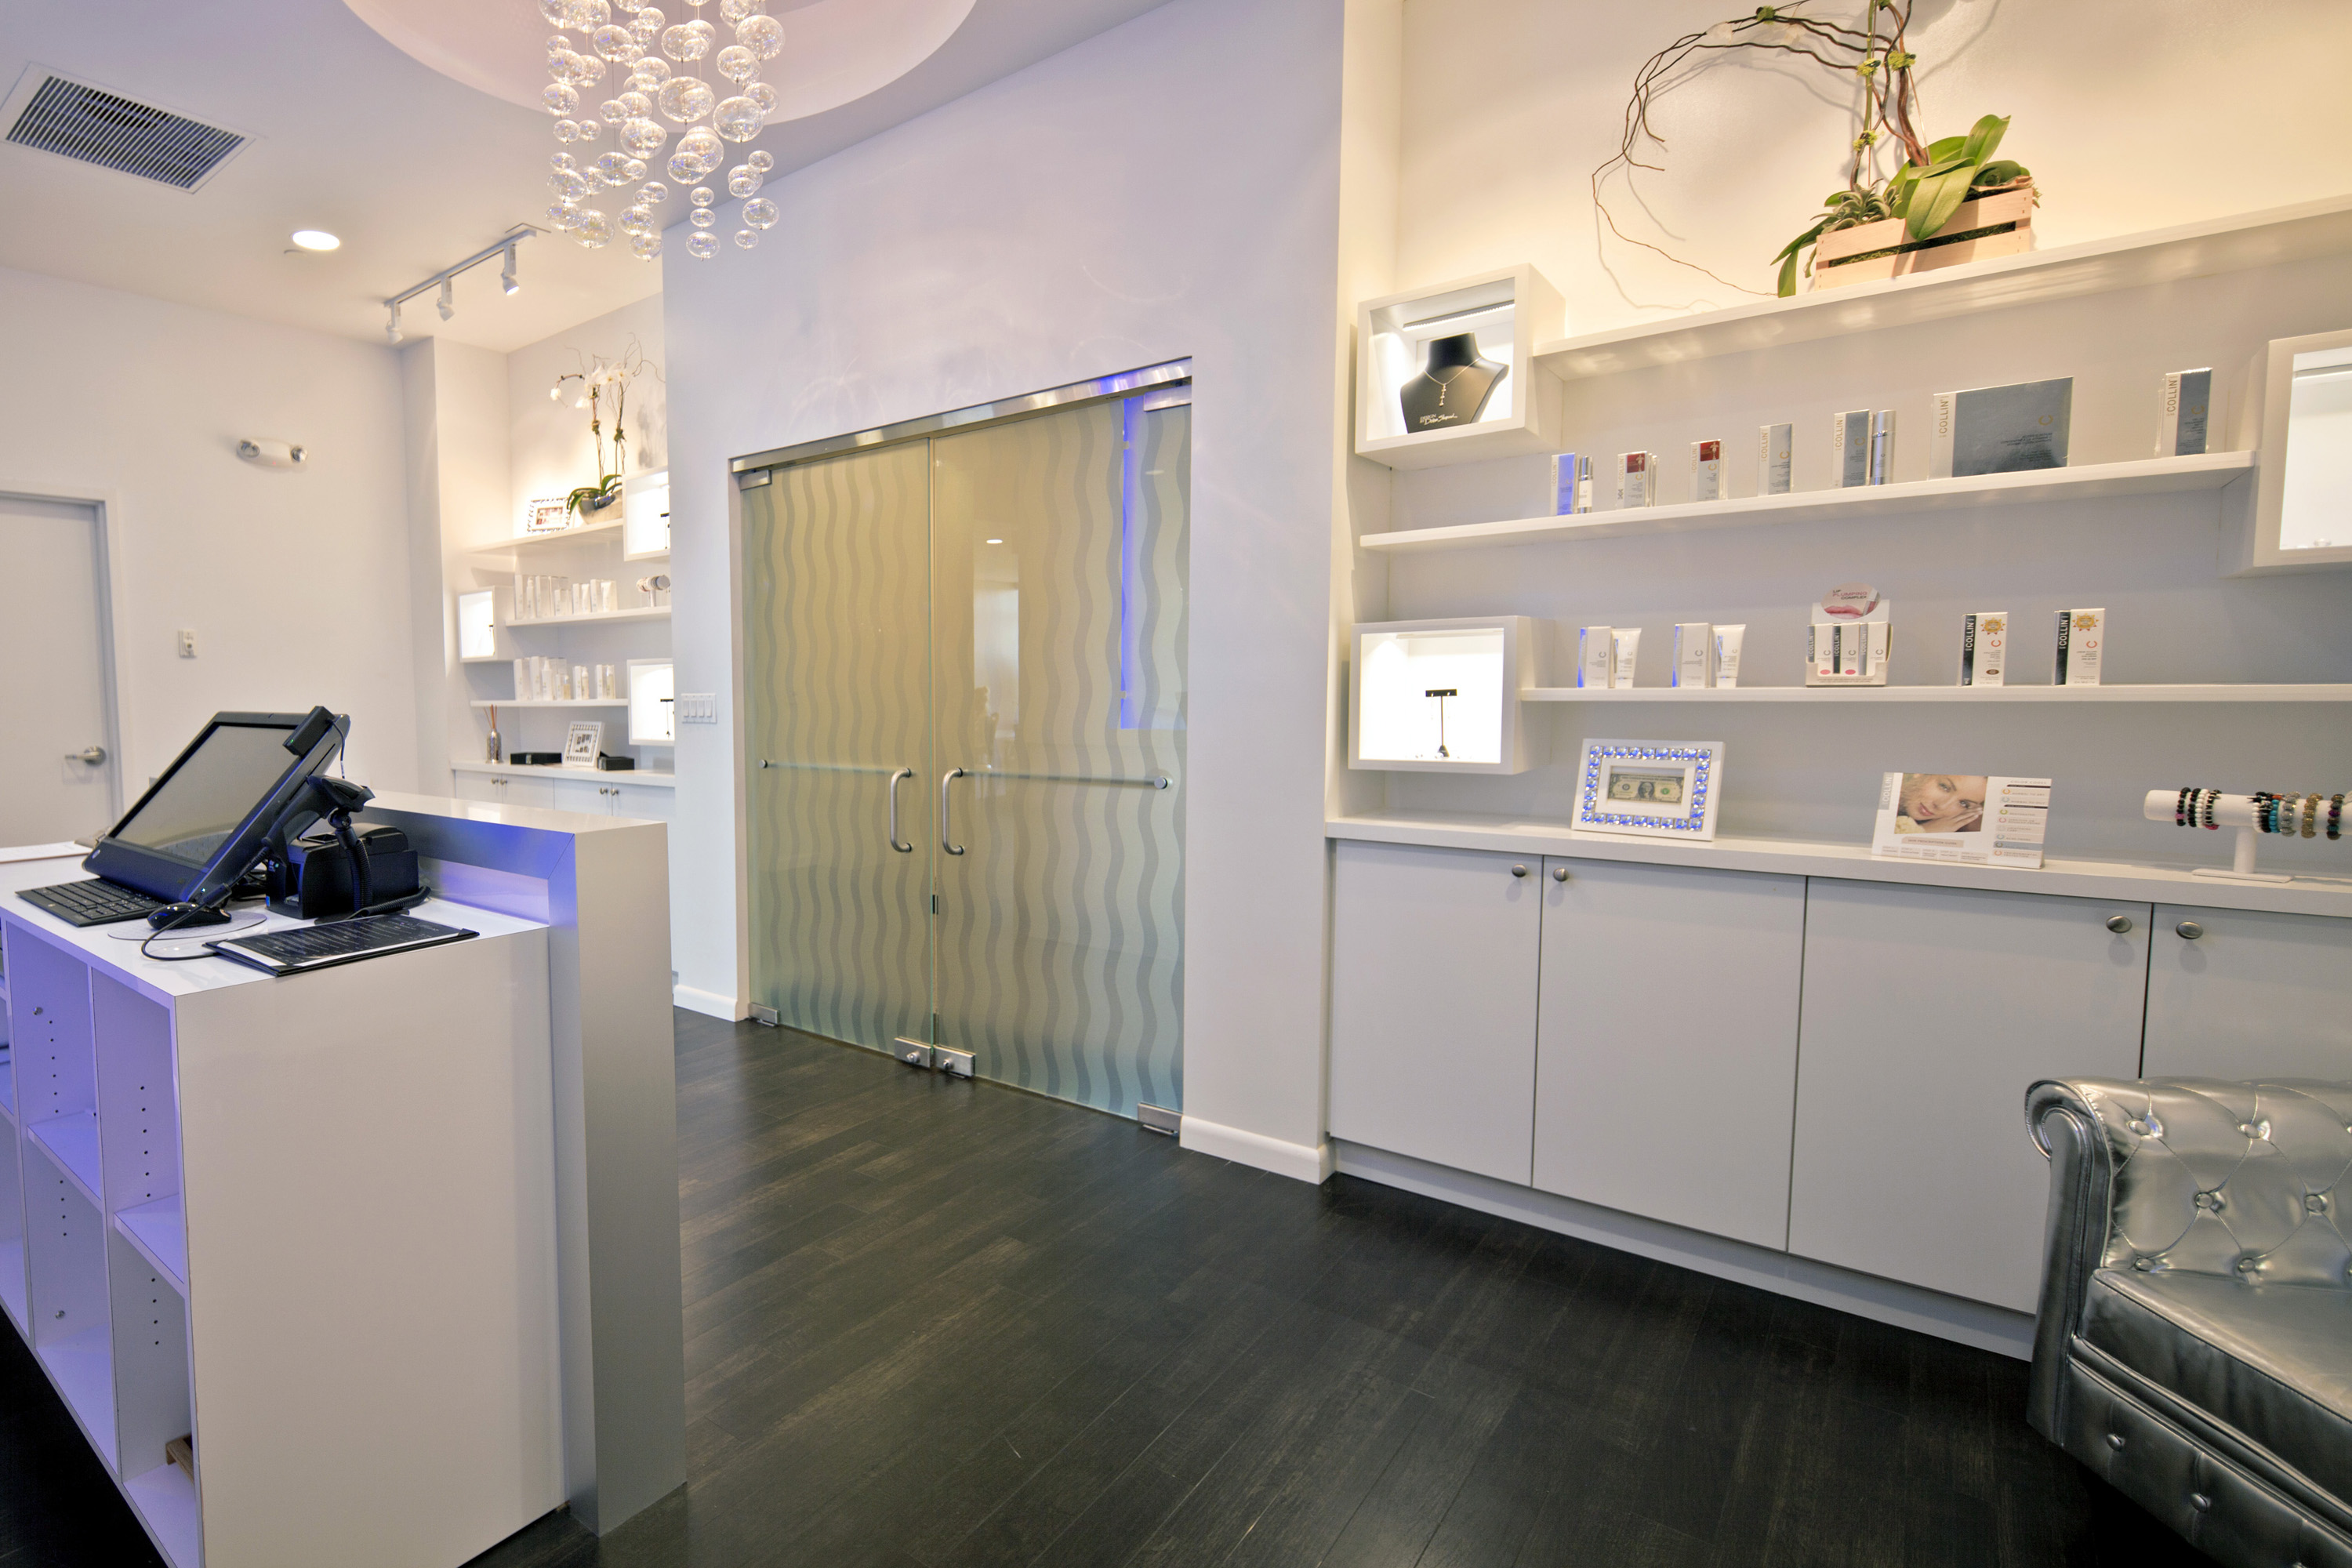 Spa / Bar (Commercial Space)